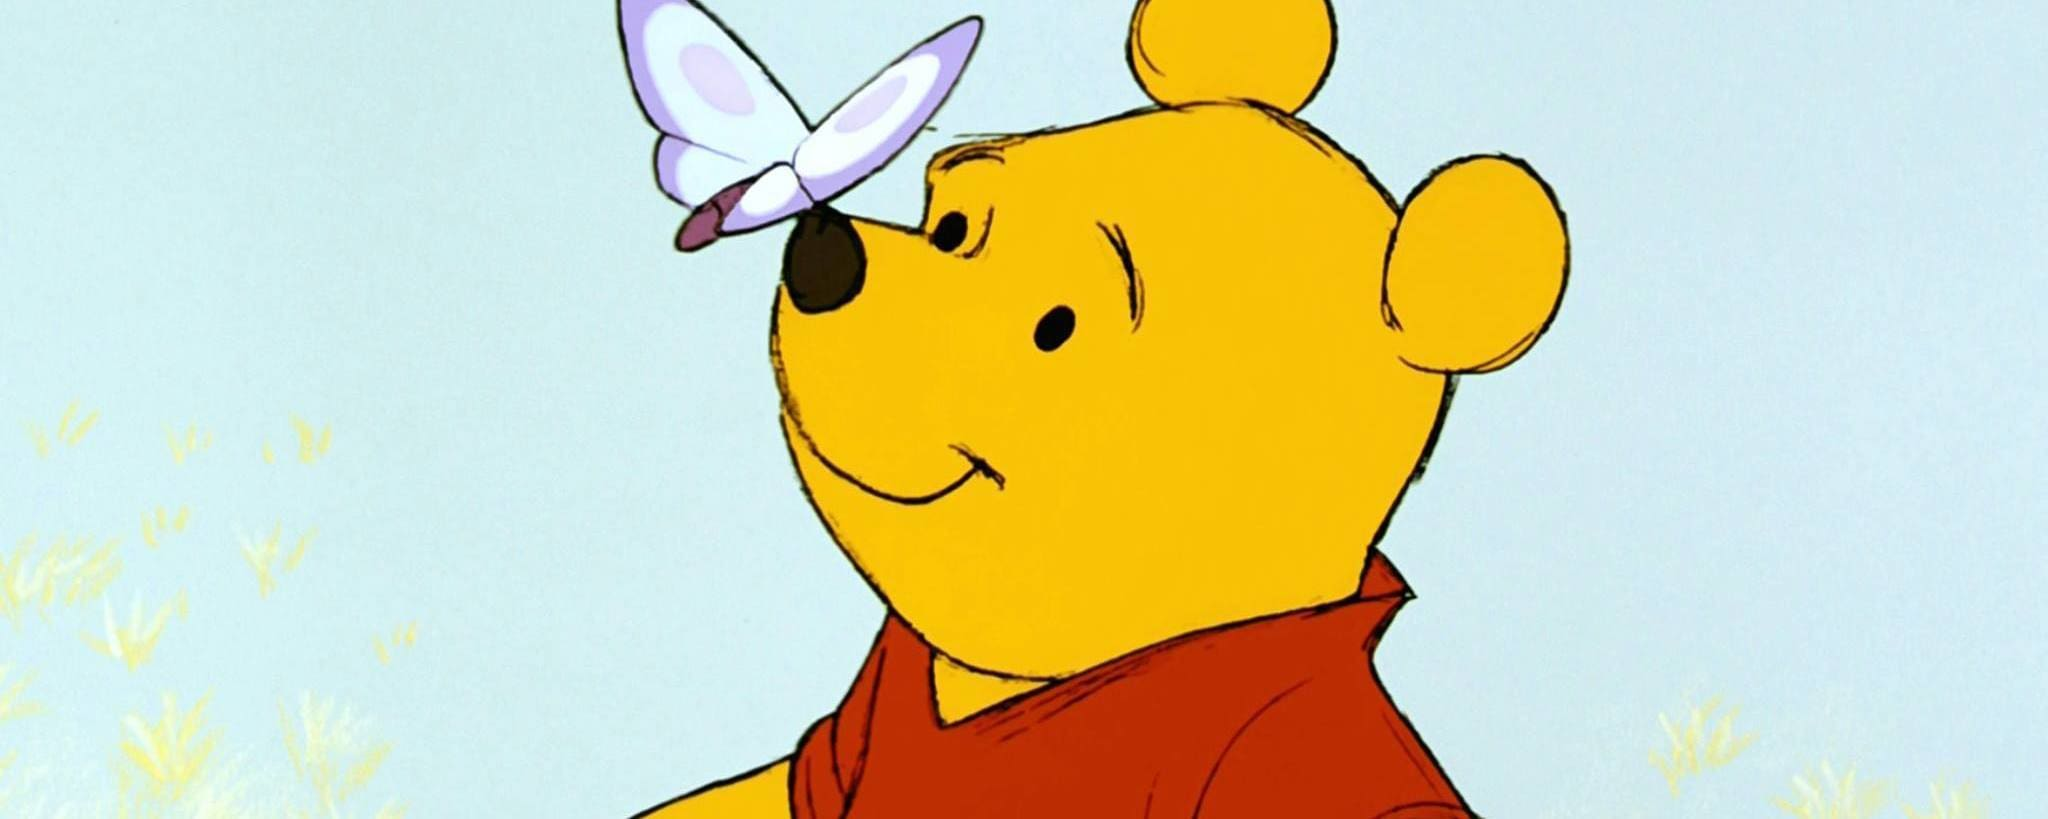 Winnie the Pooh with a butterfly